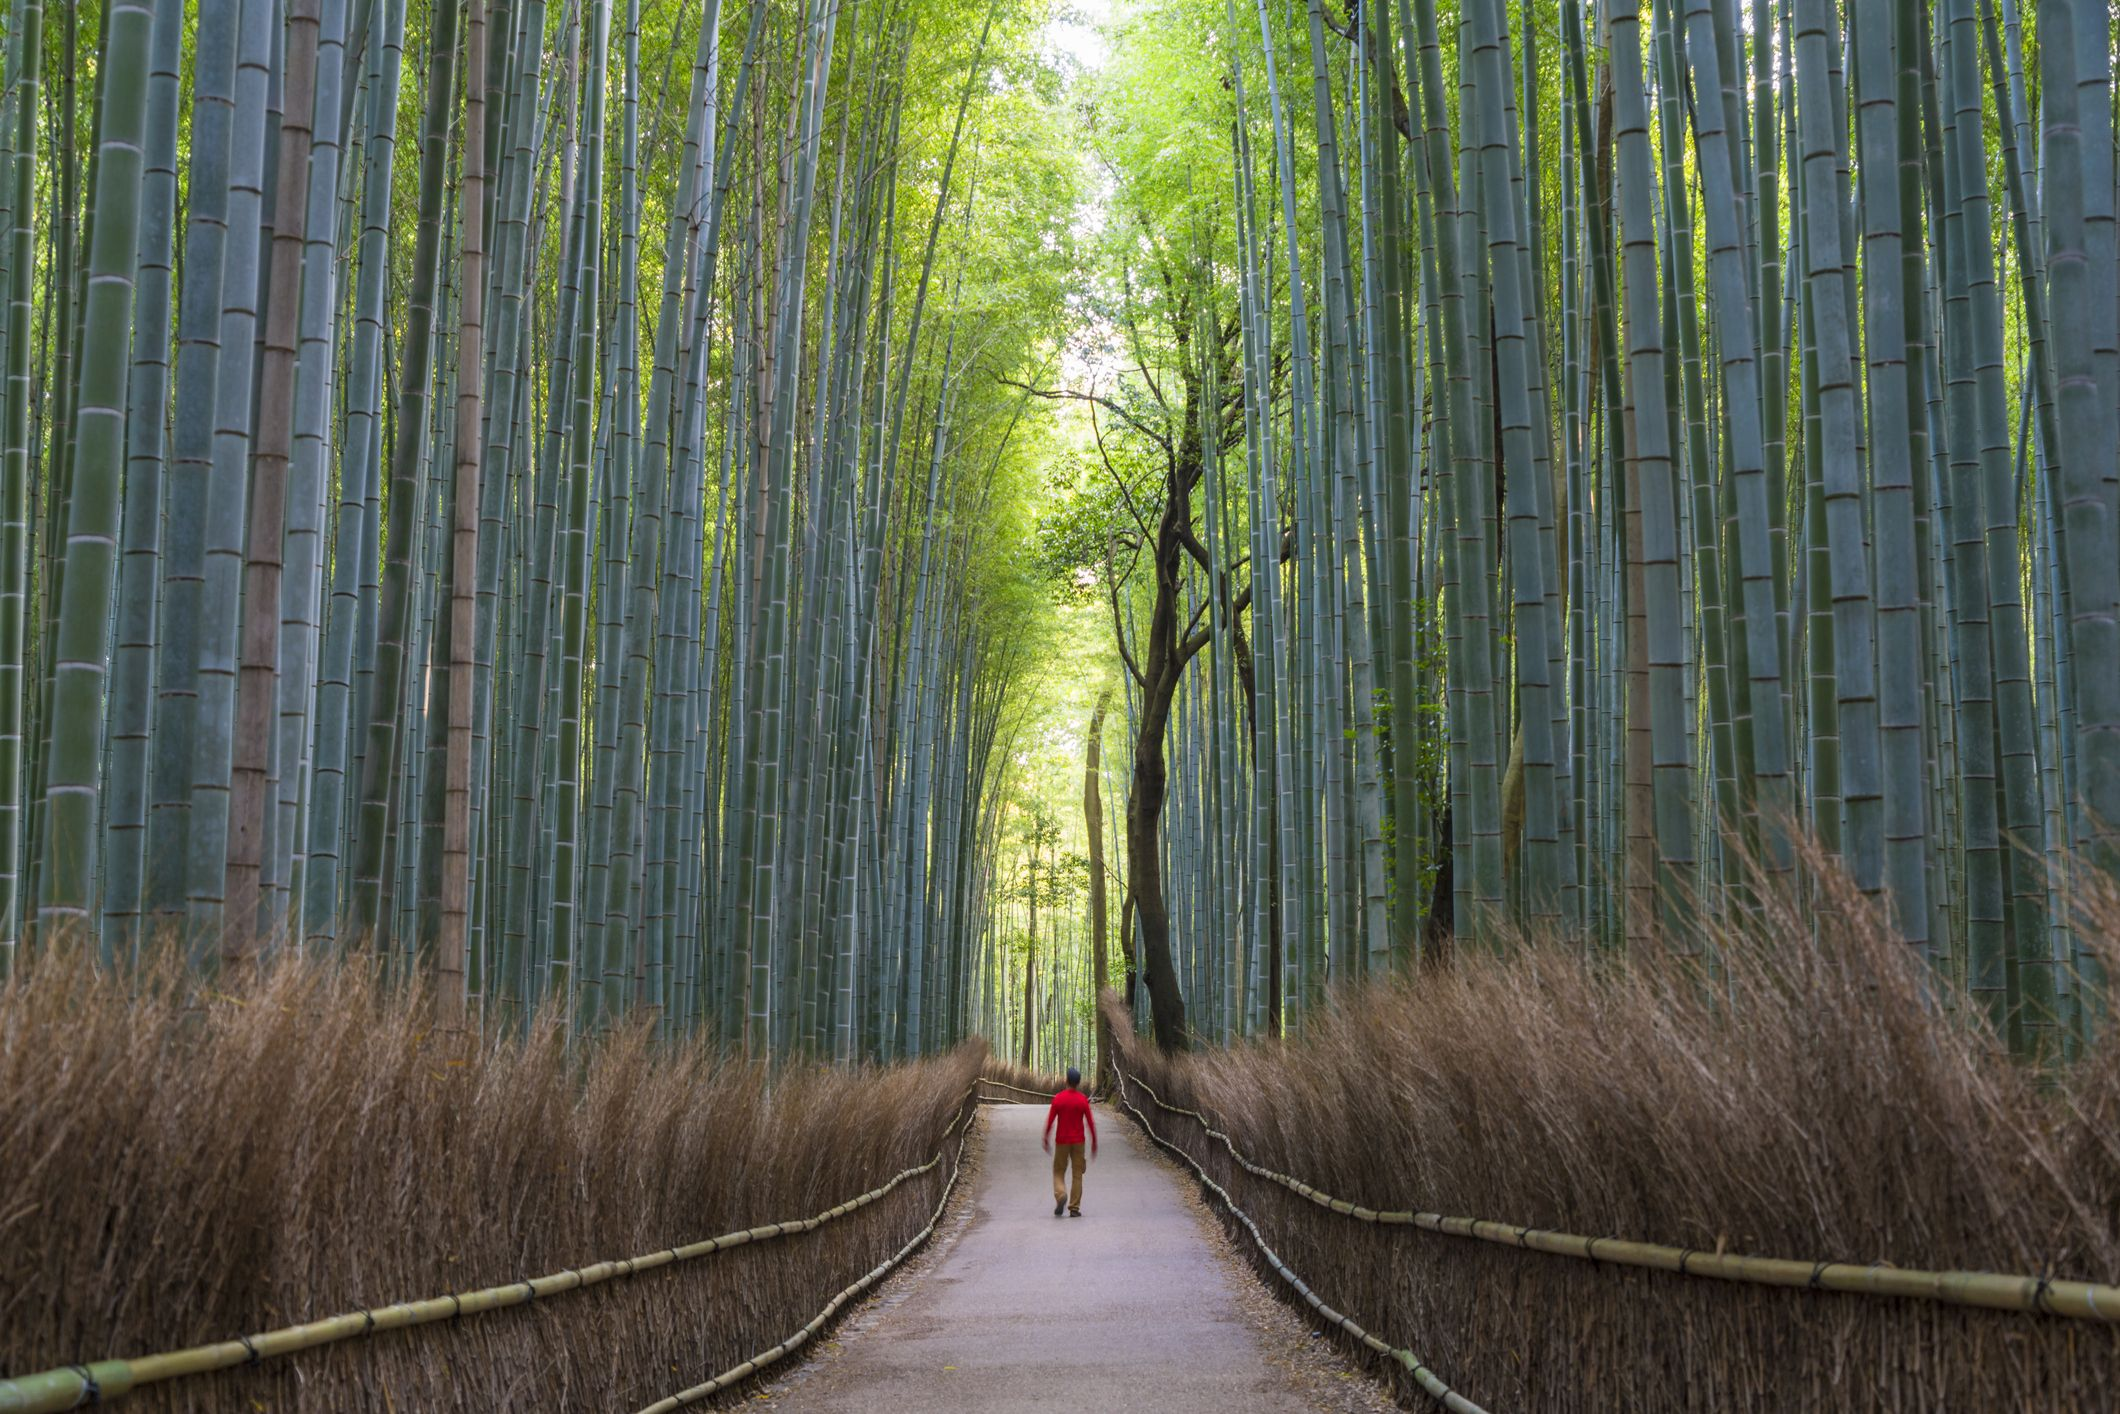 Man walking down a path in Japanese bamboo forest